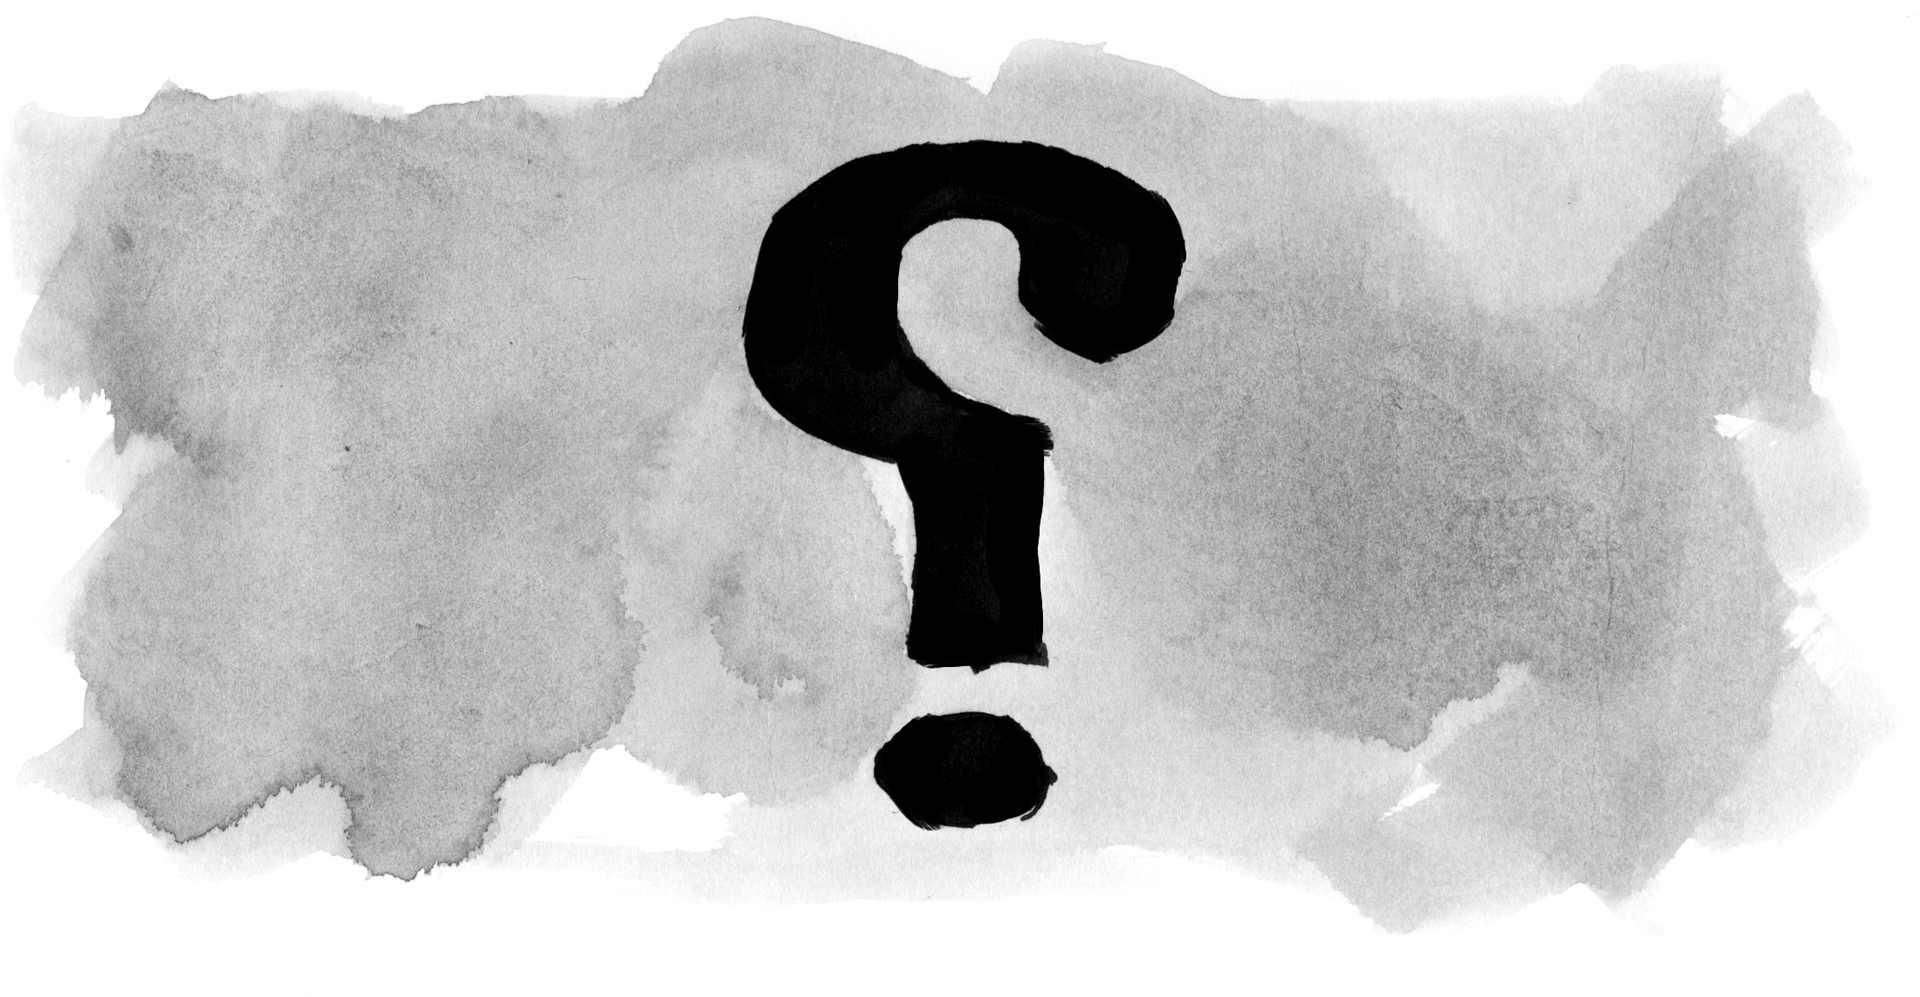 Infrequently Asked Questions of FAQs